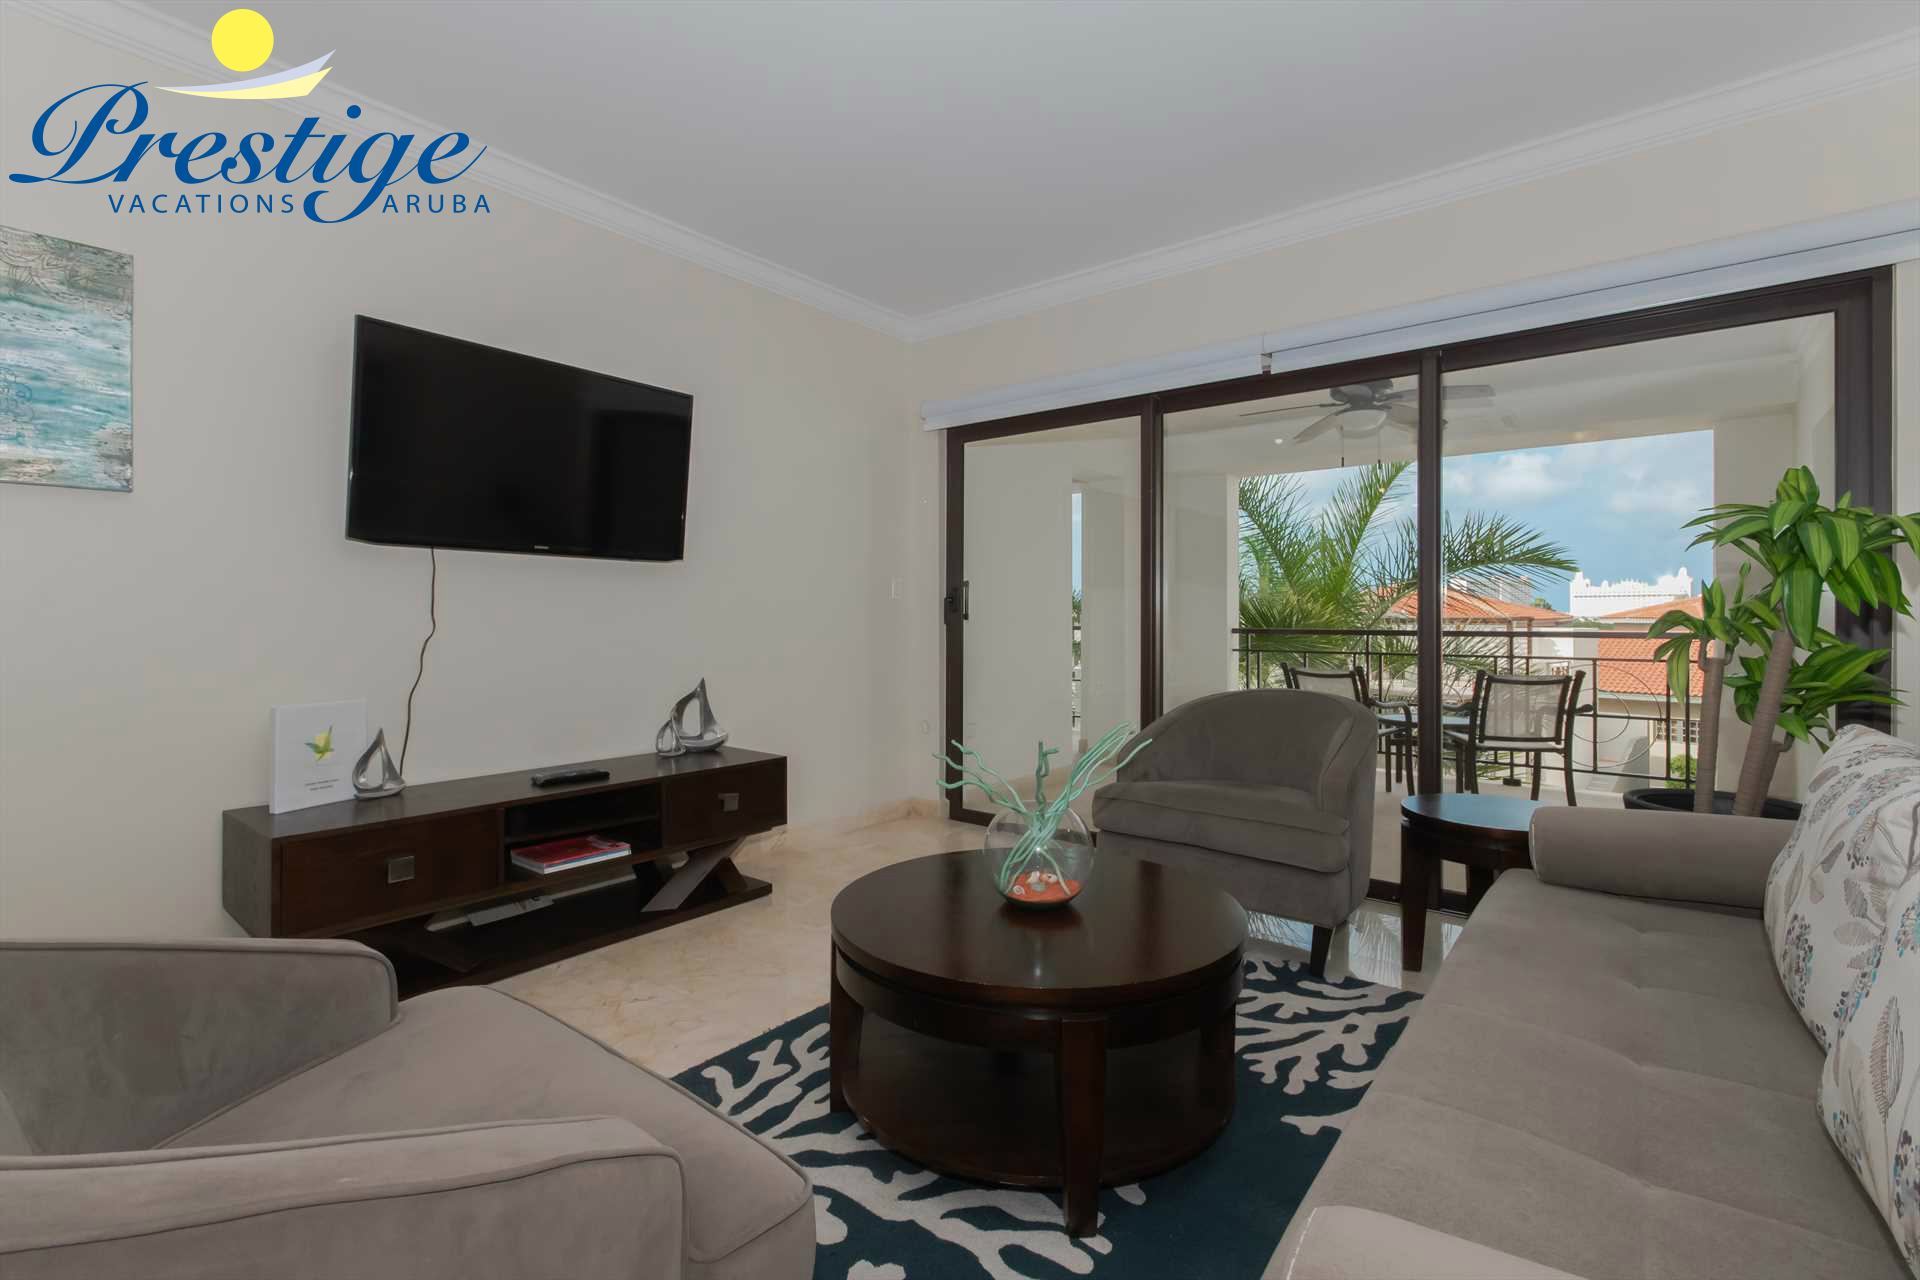 Living room with a TV and access to the balcony